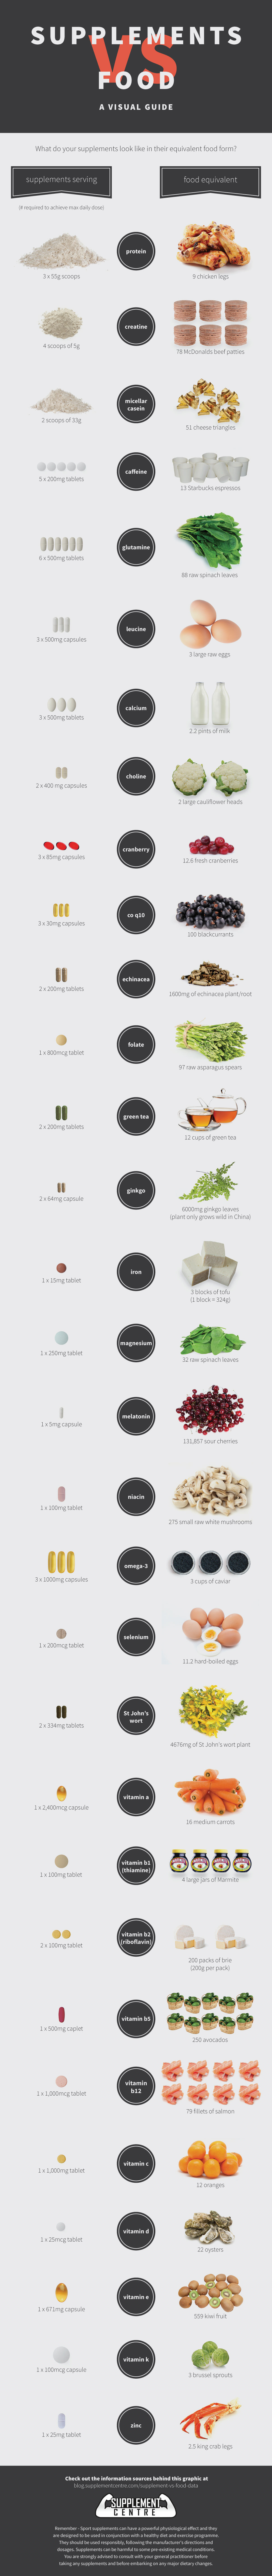 Food Instead of Supplements-Infographic